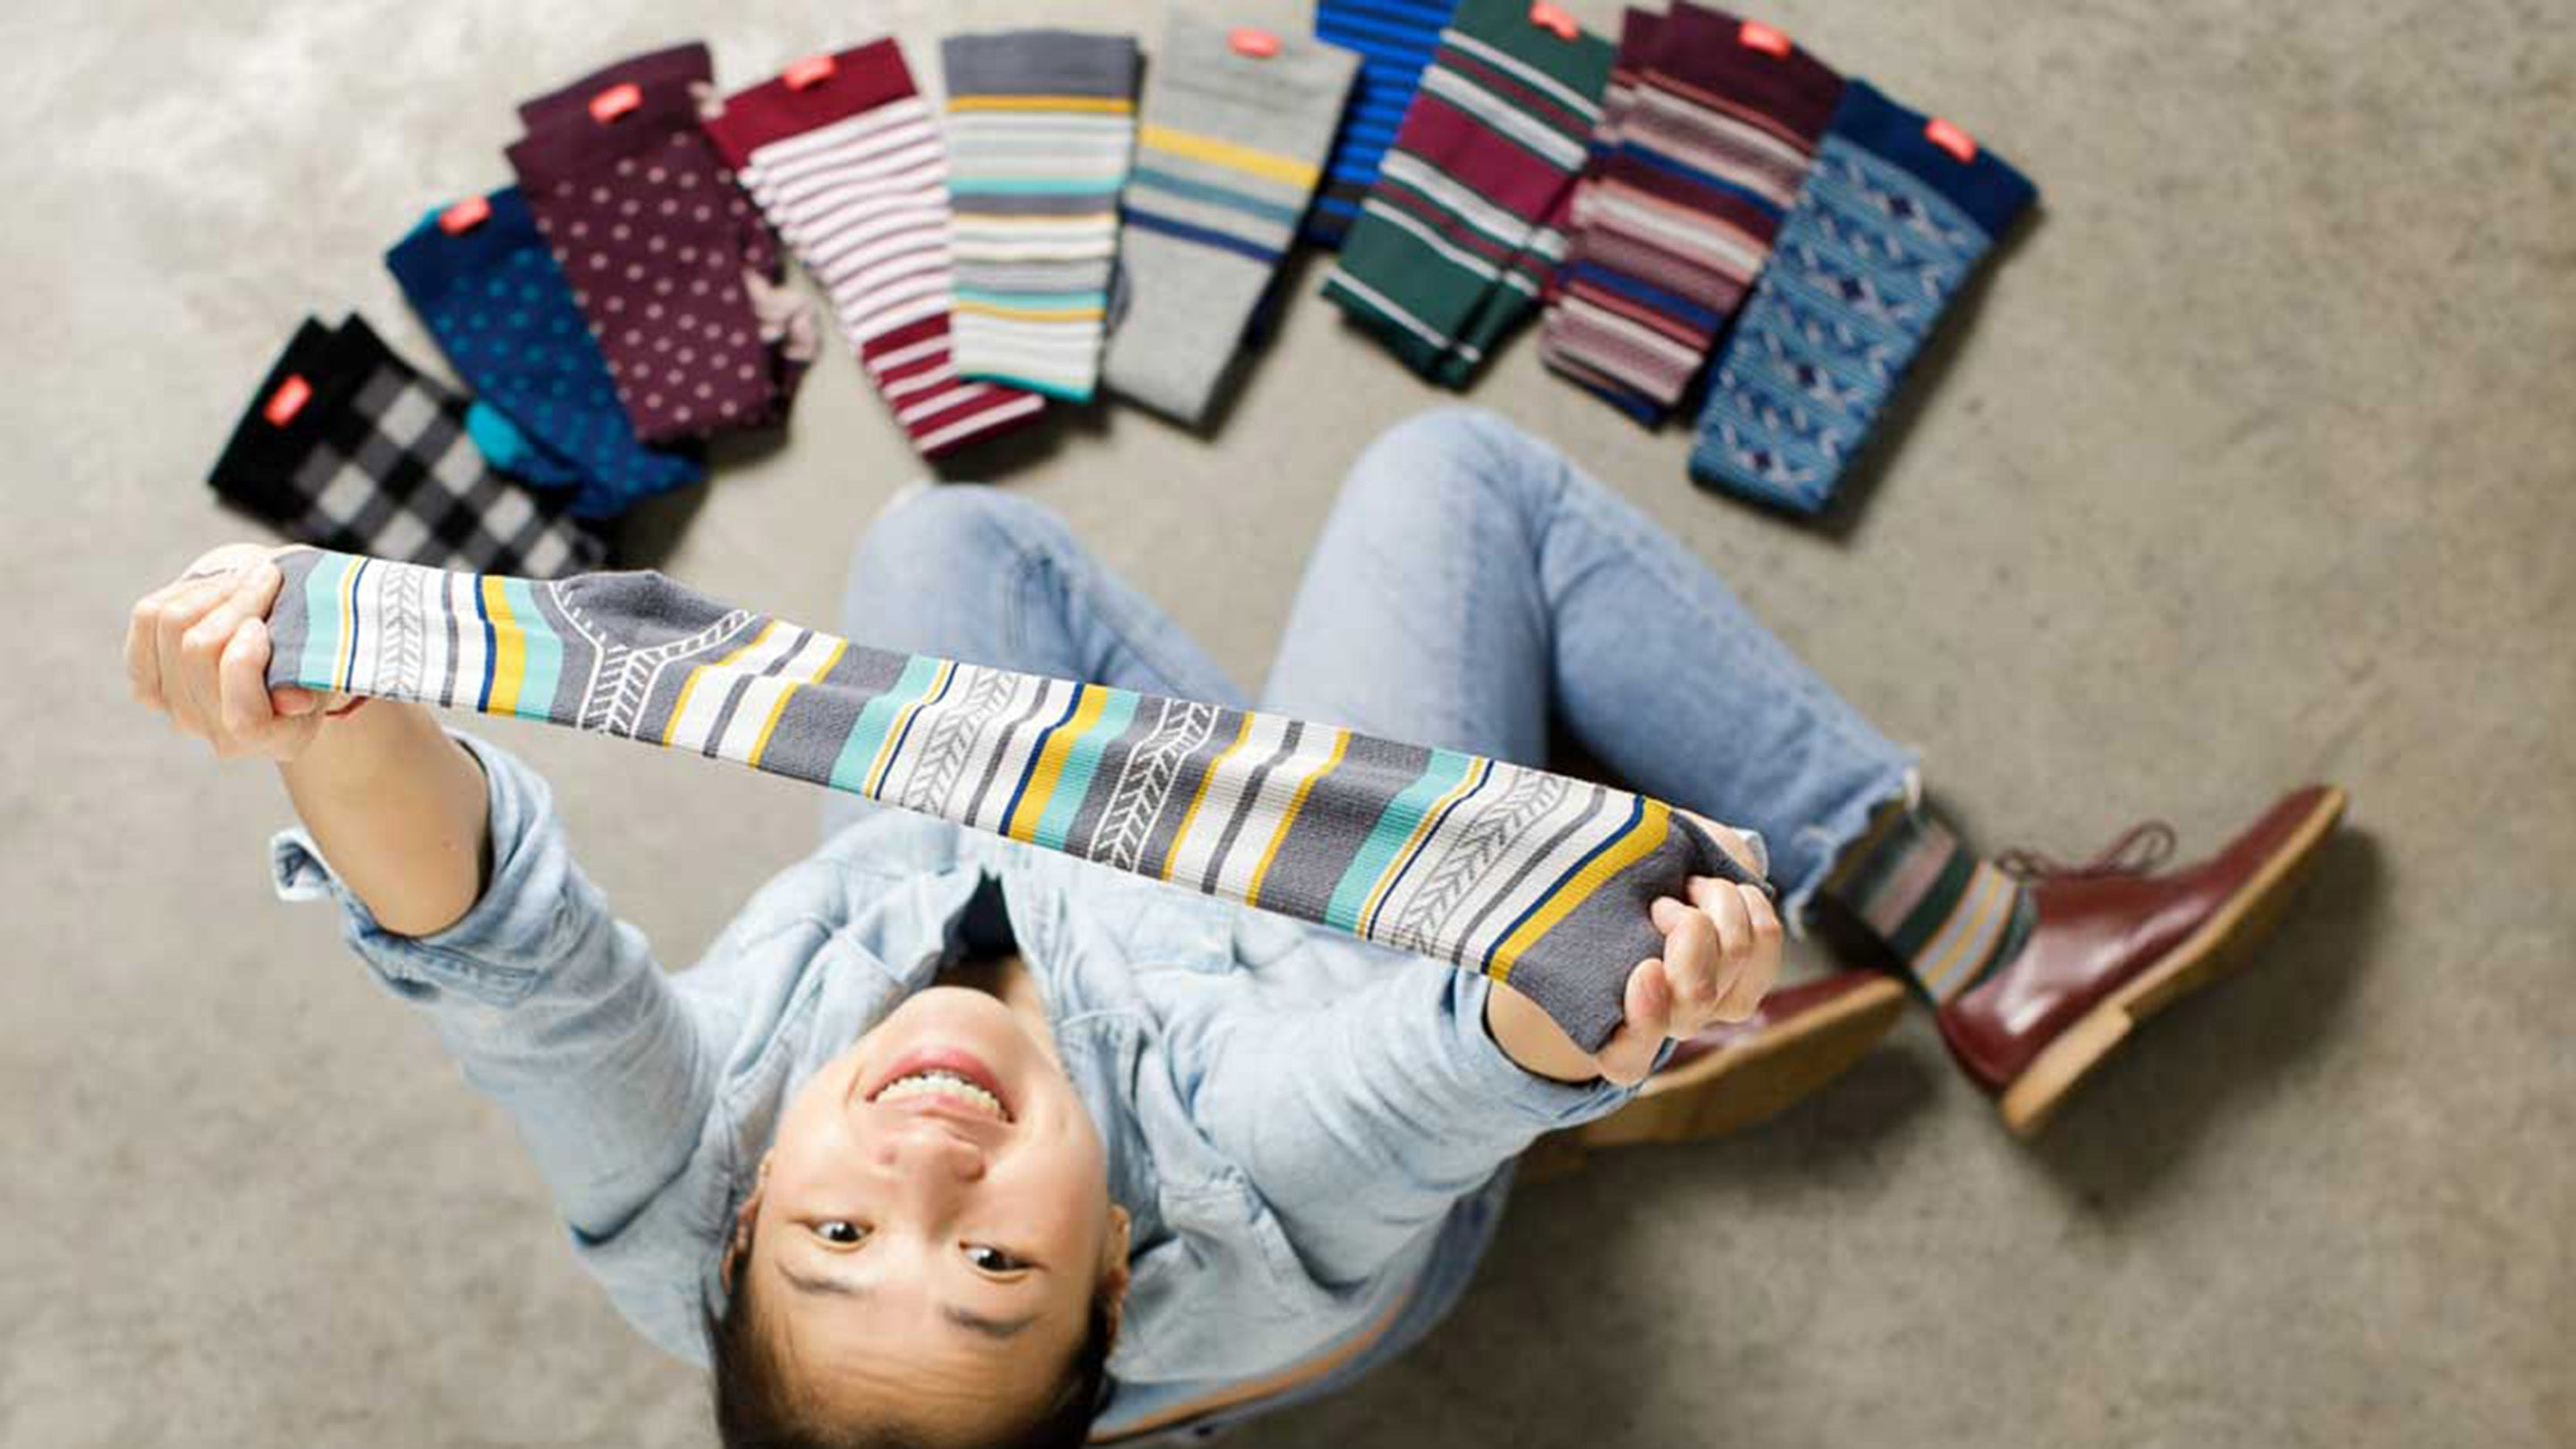 Best compression socks to give as gifts